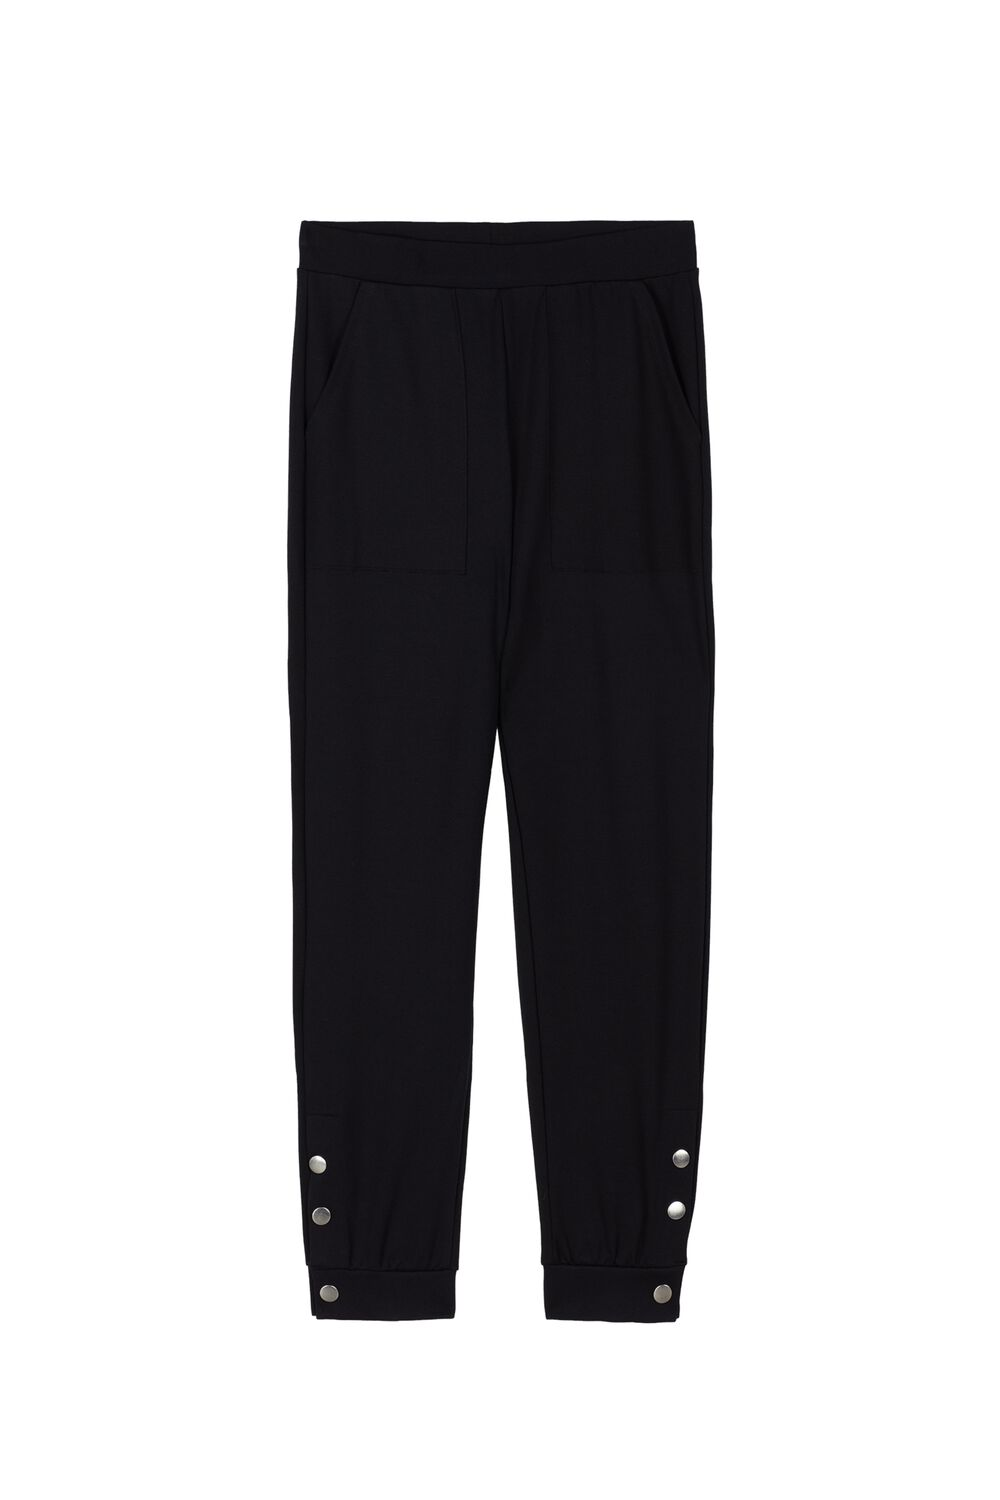 Milano-Stitch Joggers with Buttons on the bottom